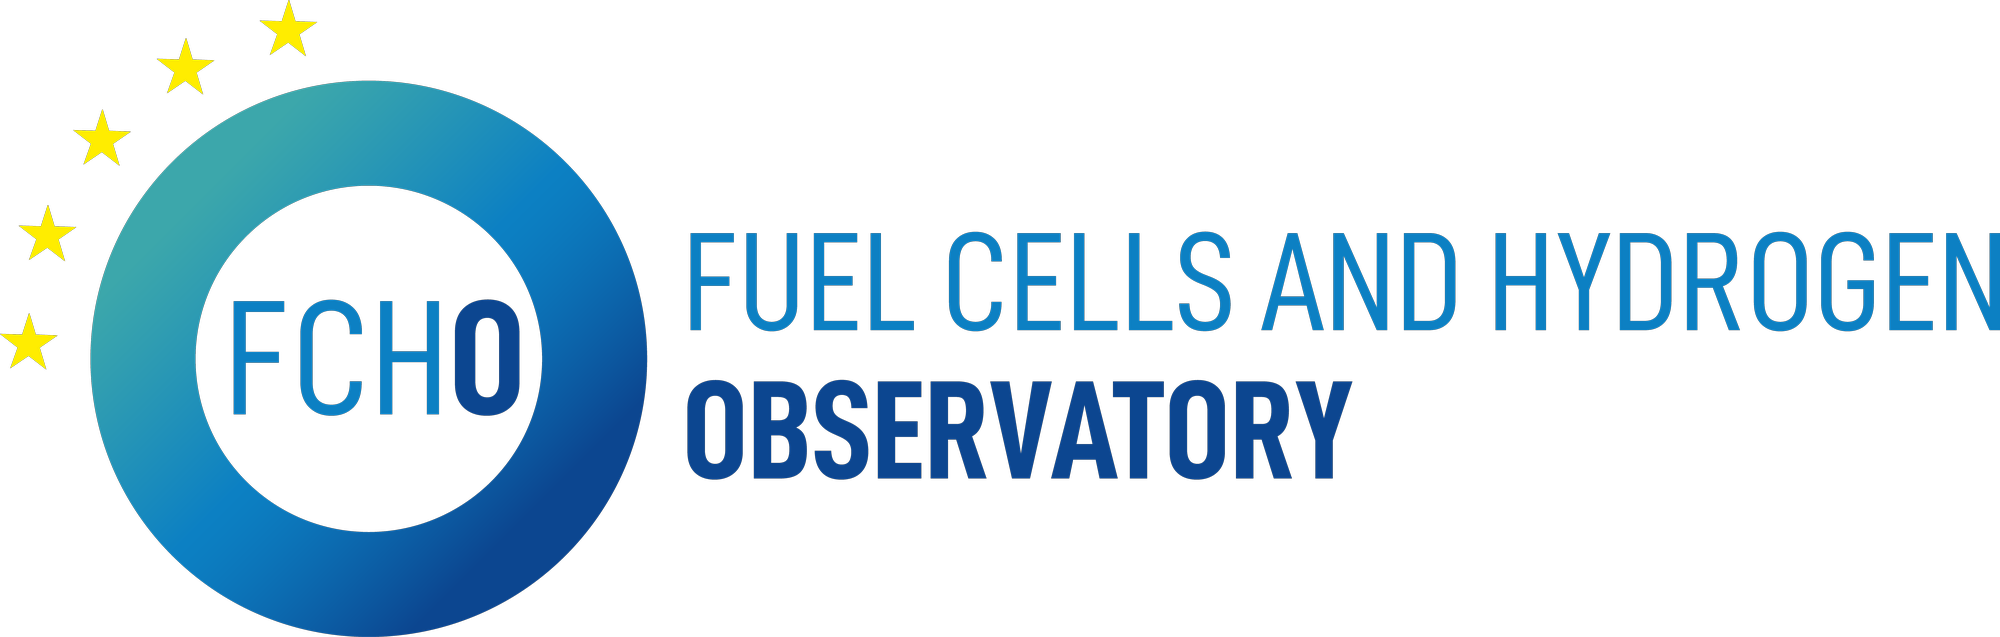 The Fuel Cells and Hydrogen Observatory is live!